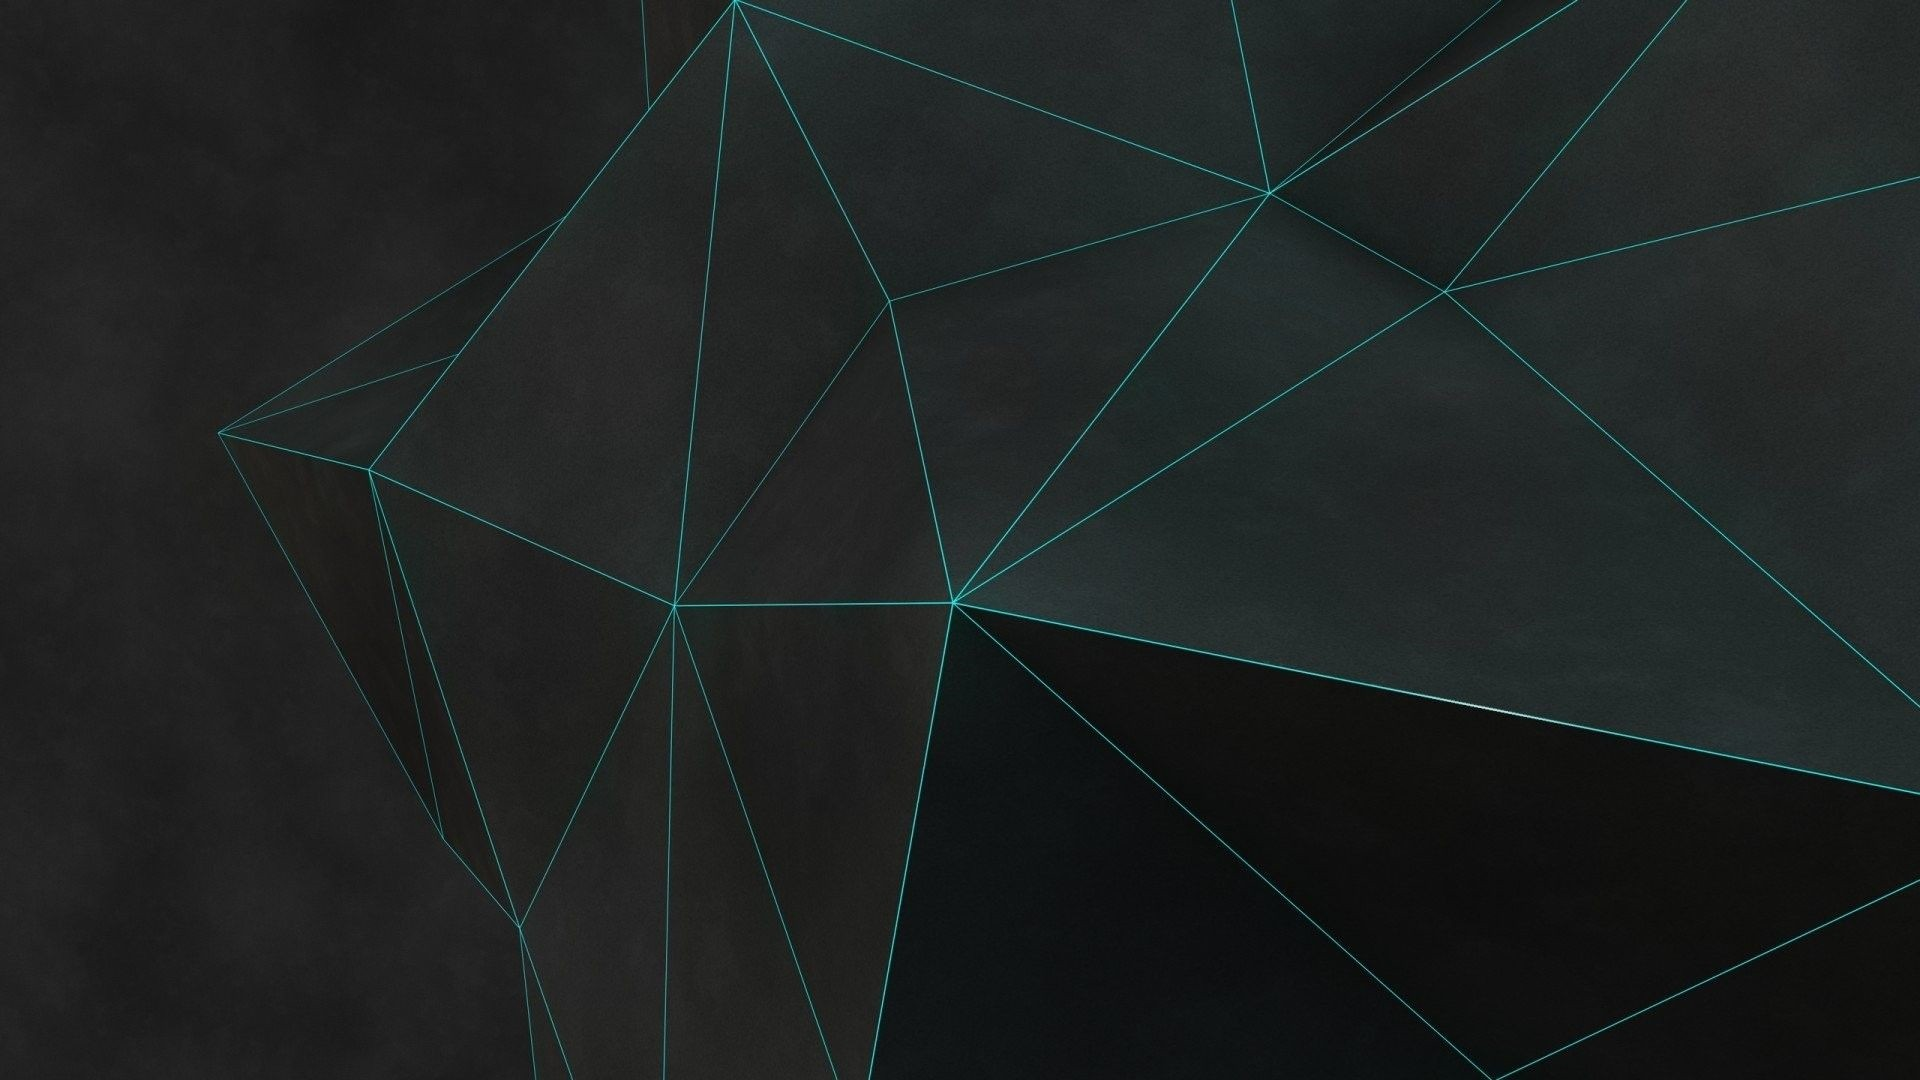 3d Minimalist Free Wallpaper and Background